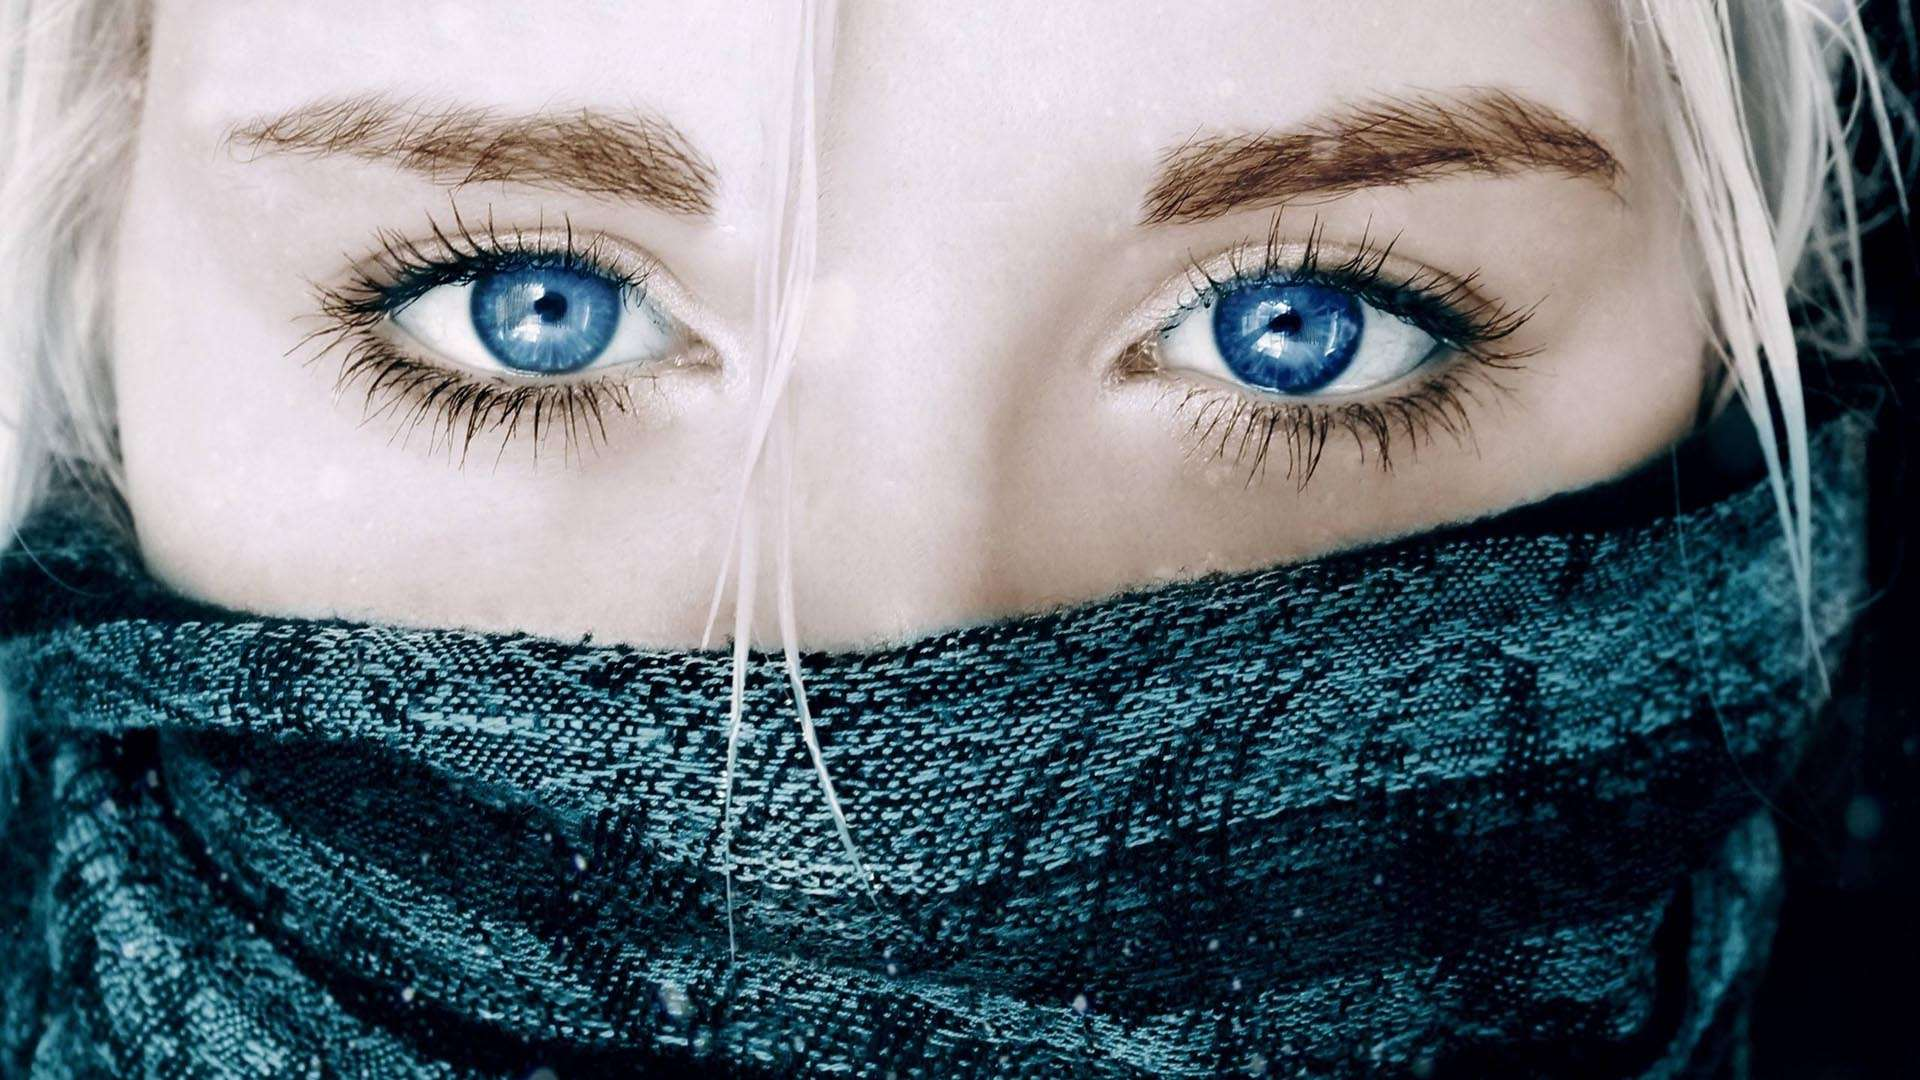 Hd wallpaper eyes - And Blue Eyes Hd Wallpaper Fullhdwpp Full Hd Wallpapers 1920x1080